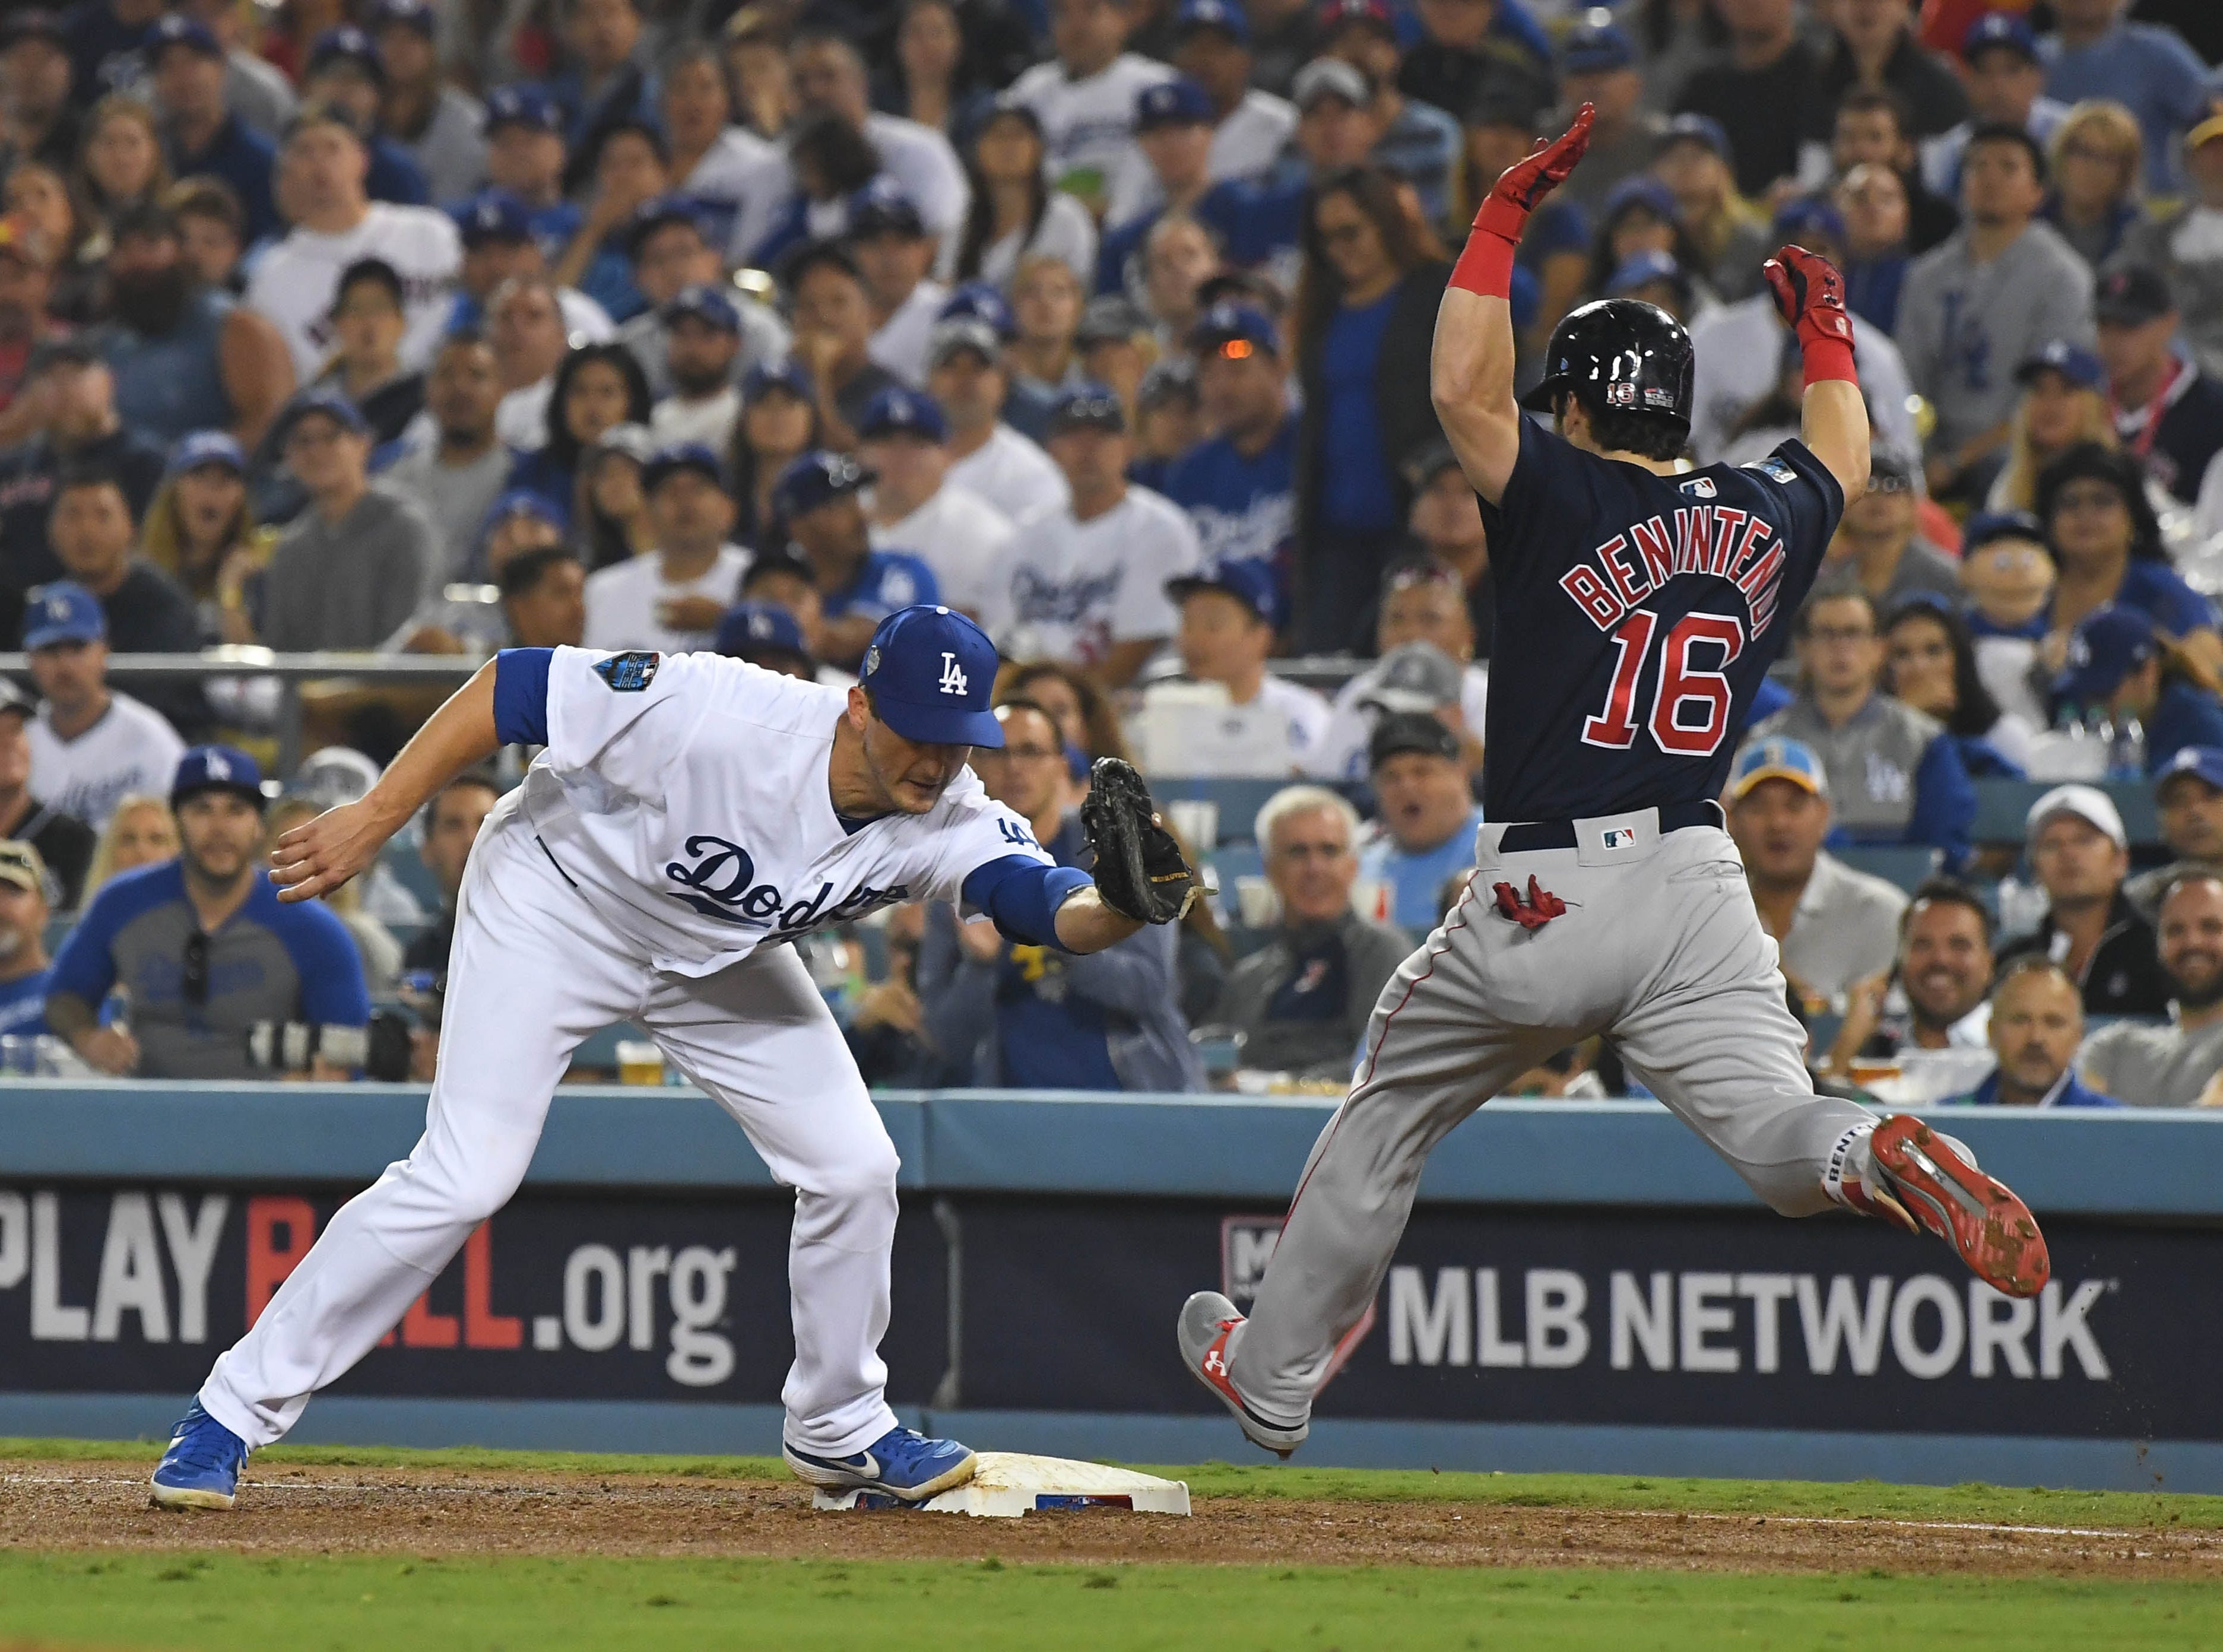 Game 4 at Dodger Stadium: Andrew Benintendi is out at first base in the sixth inning.